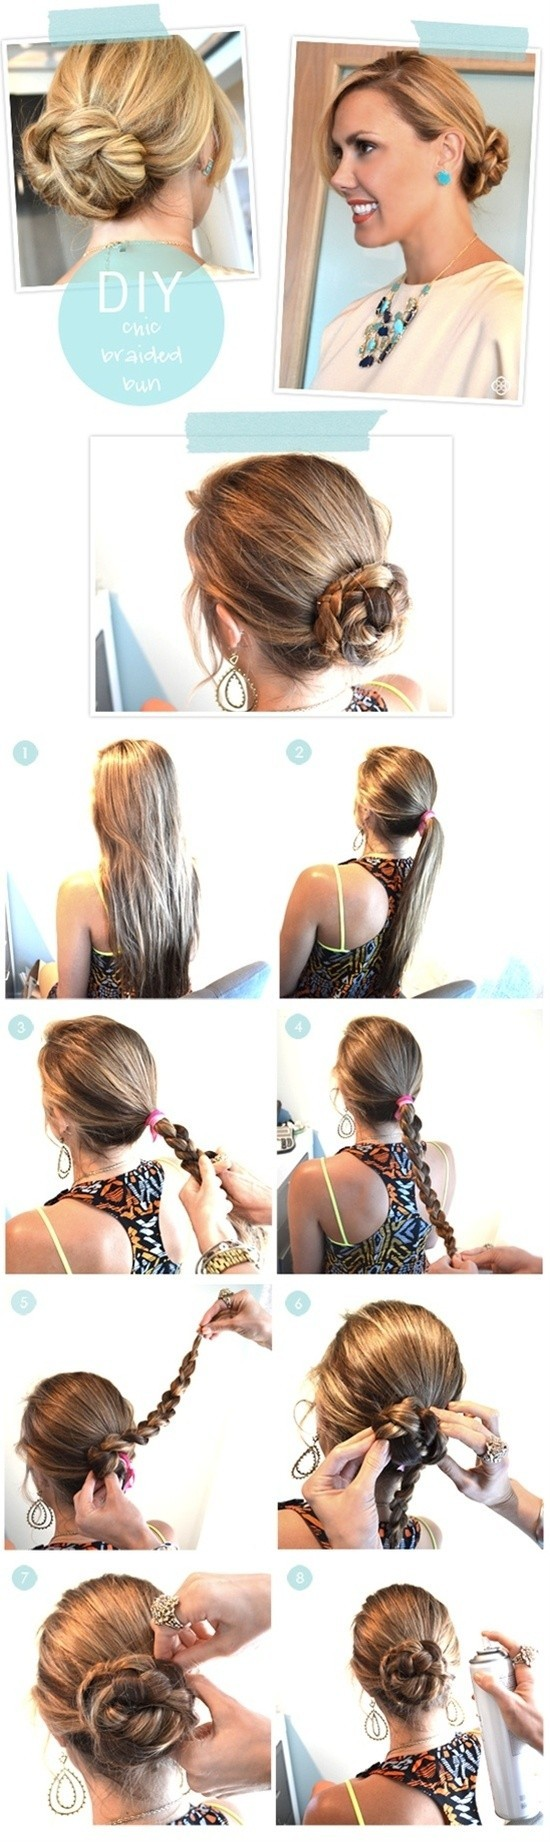 Step by step hairstyles for long hair long hairstyles ideas diy chic braided bun hair tutorial easy updos for long hair solutioingenieria Image collections